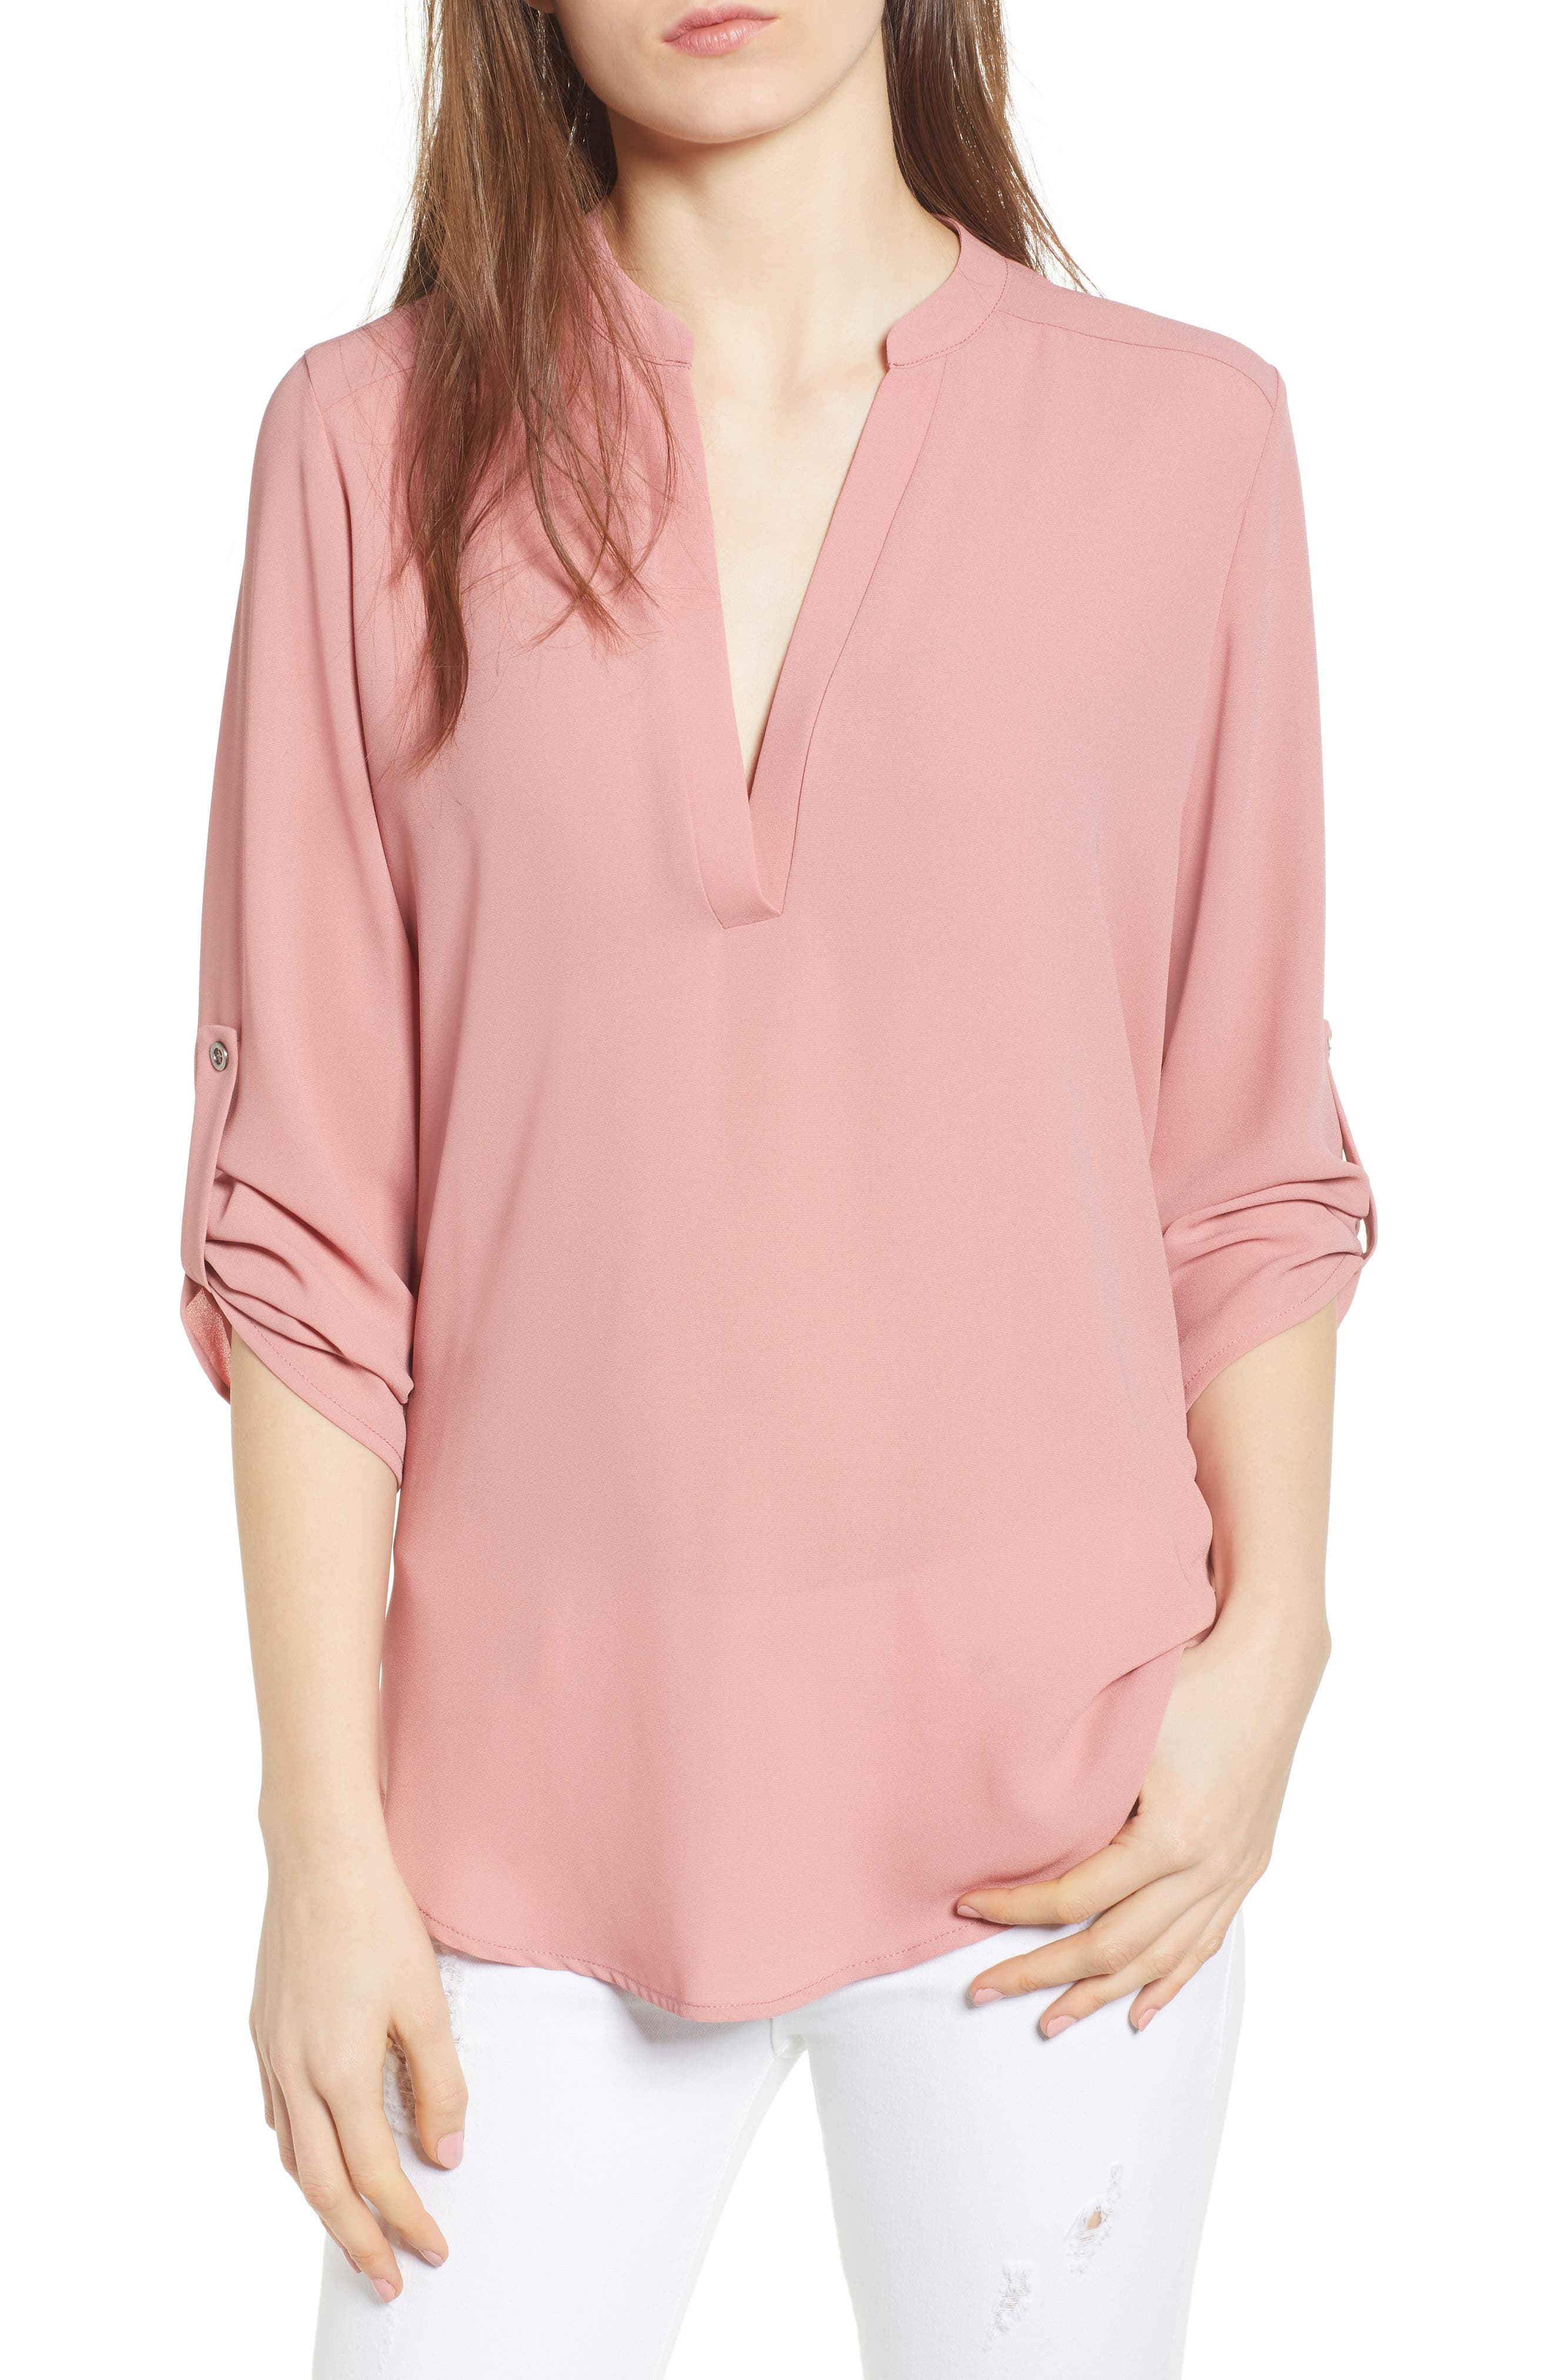 Discount 2018 The Flounce Sleeve Button Up in Pink. - size 0 / XS (also in 1 / S) The Great. Order Cheap Price Shop Your Own Original Online Cheap Sale Explore aO2OdUWn